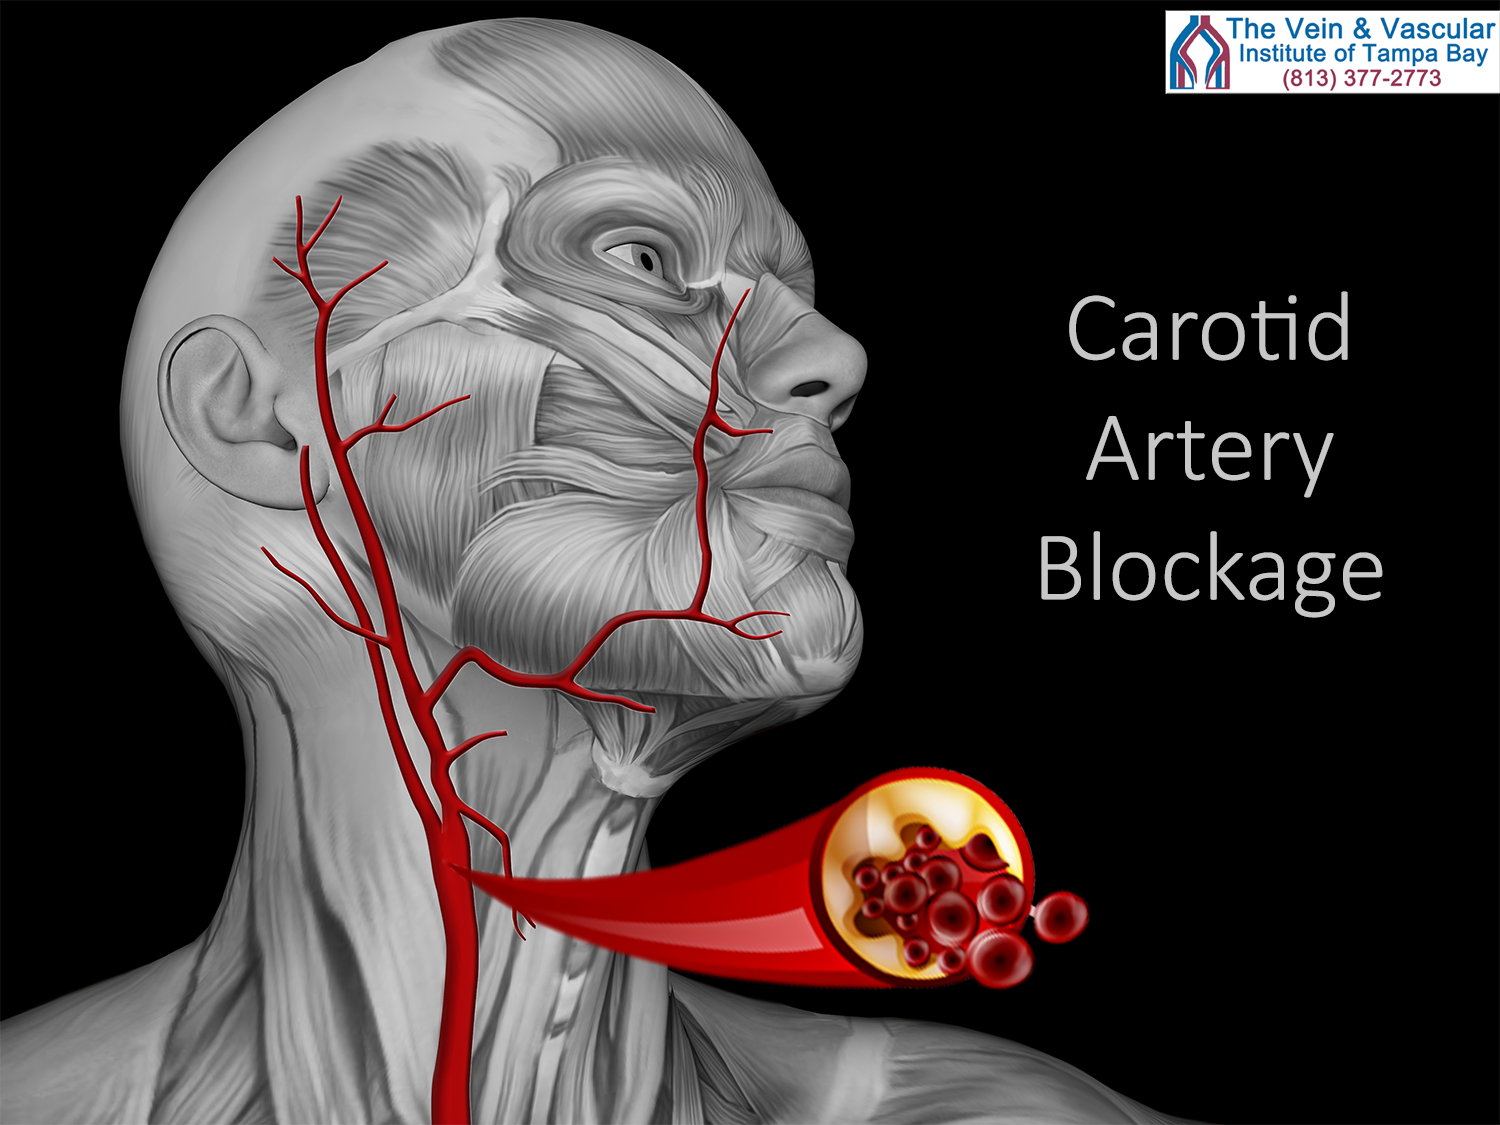 Carotid Artery Surgery in Tampa, FL To Help Prevent Stroke ...